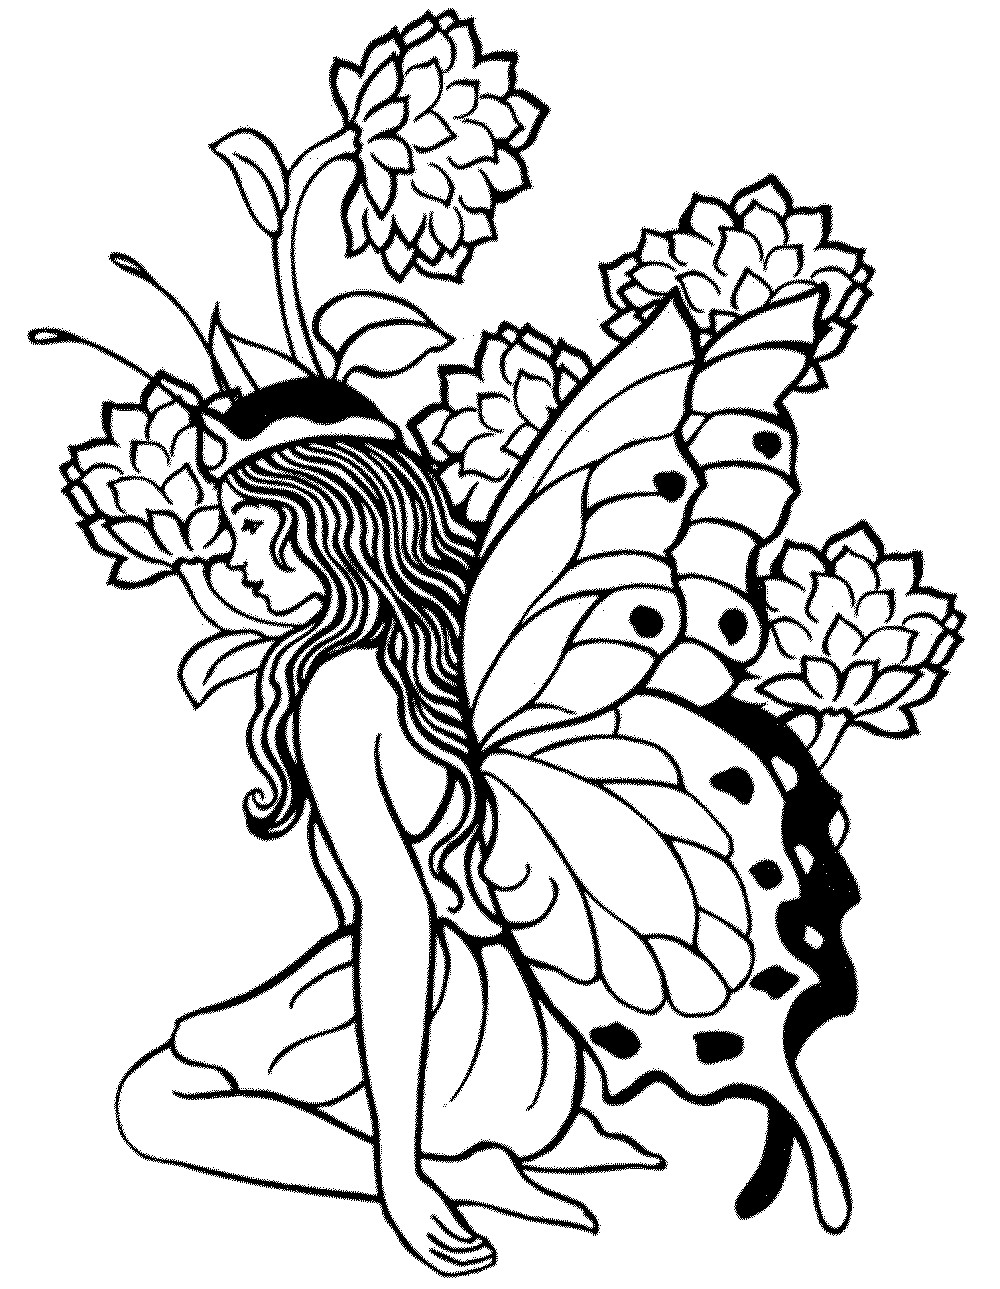 Printable Free Coloring Pages For Adults  Free Coloring Pages For Adults Printable Detailed Image 23